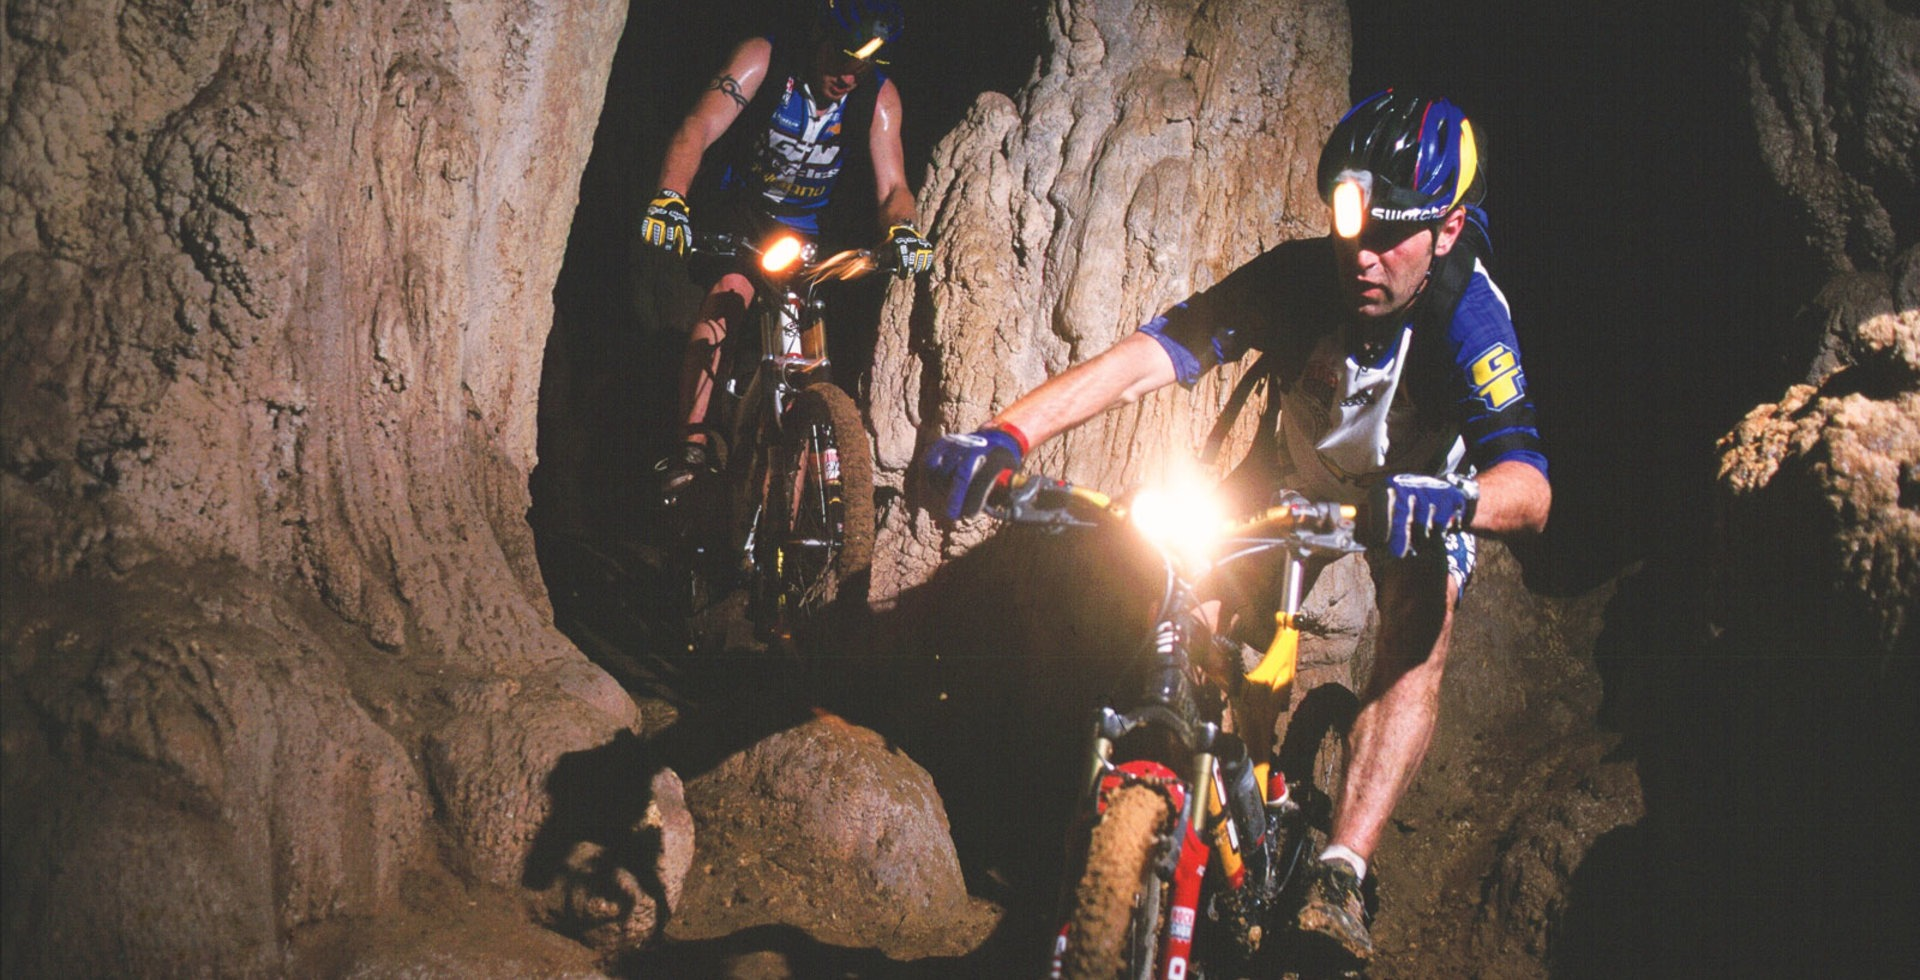 """""""Steve Peat and I went searching for headhunters in the jungles of Borneo, riding through one of the massive limestone caves inhabited by millions of bats. Spirits got the better of us on this trip."""" Photo: Stefan Eisend"""